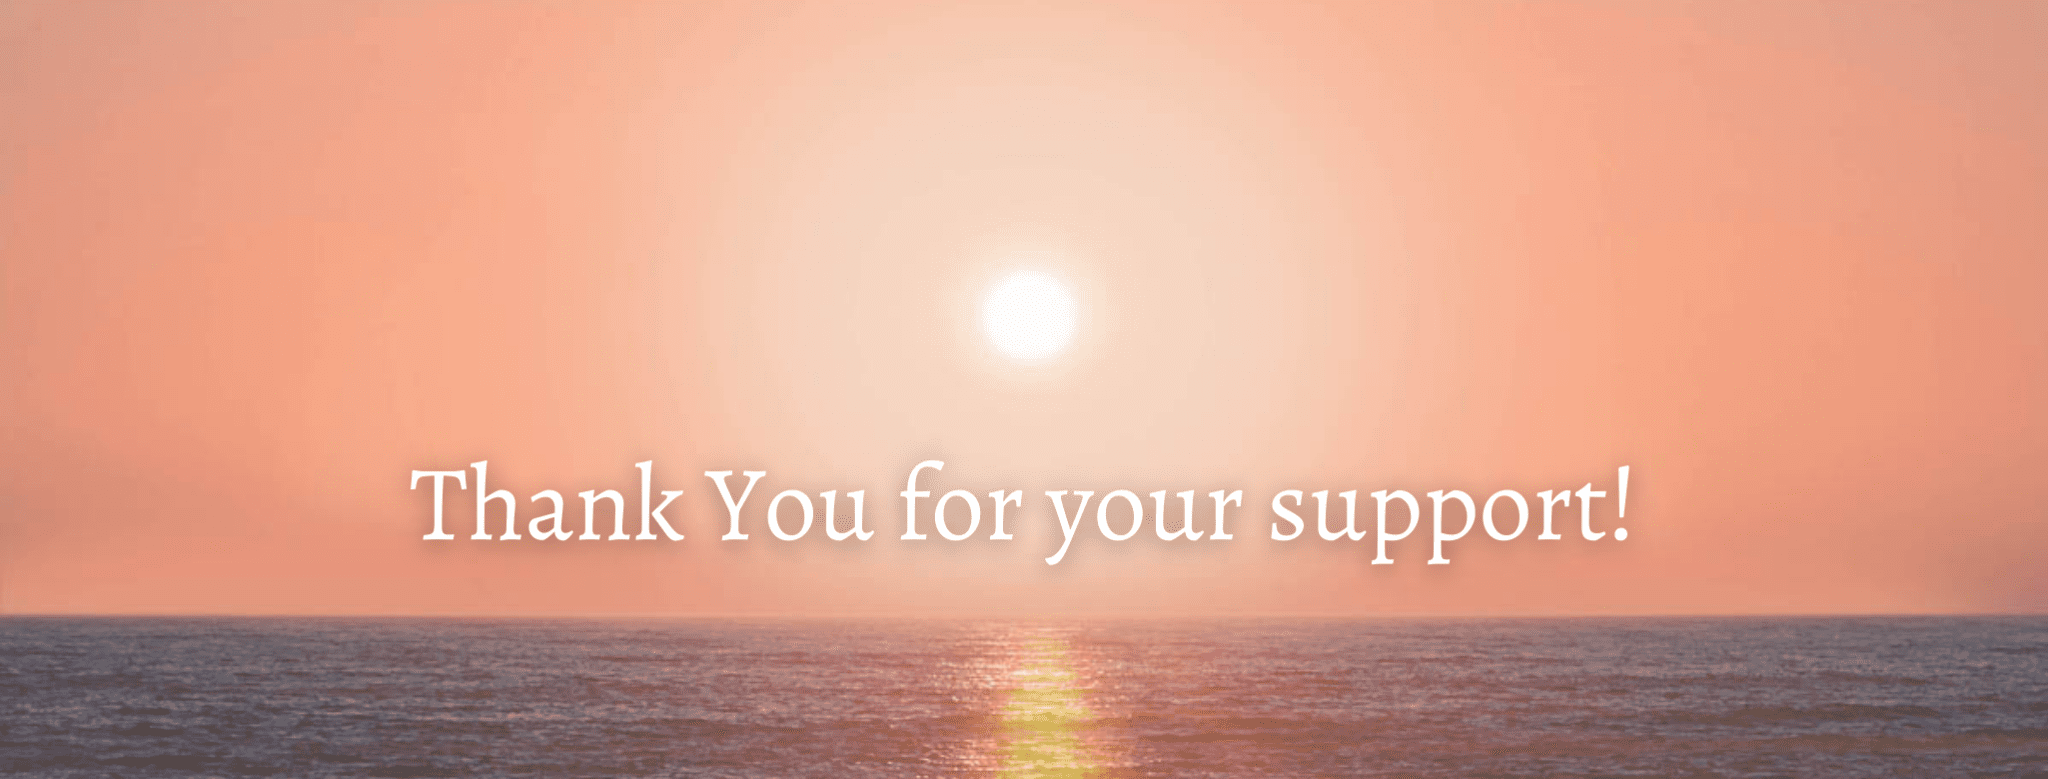 Thank You for your support! For website